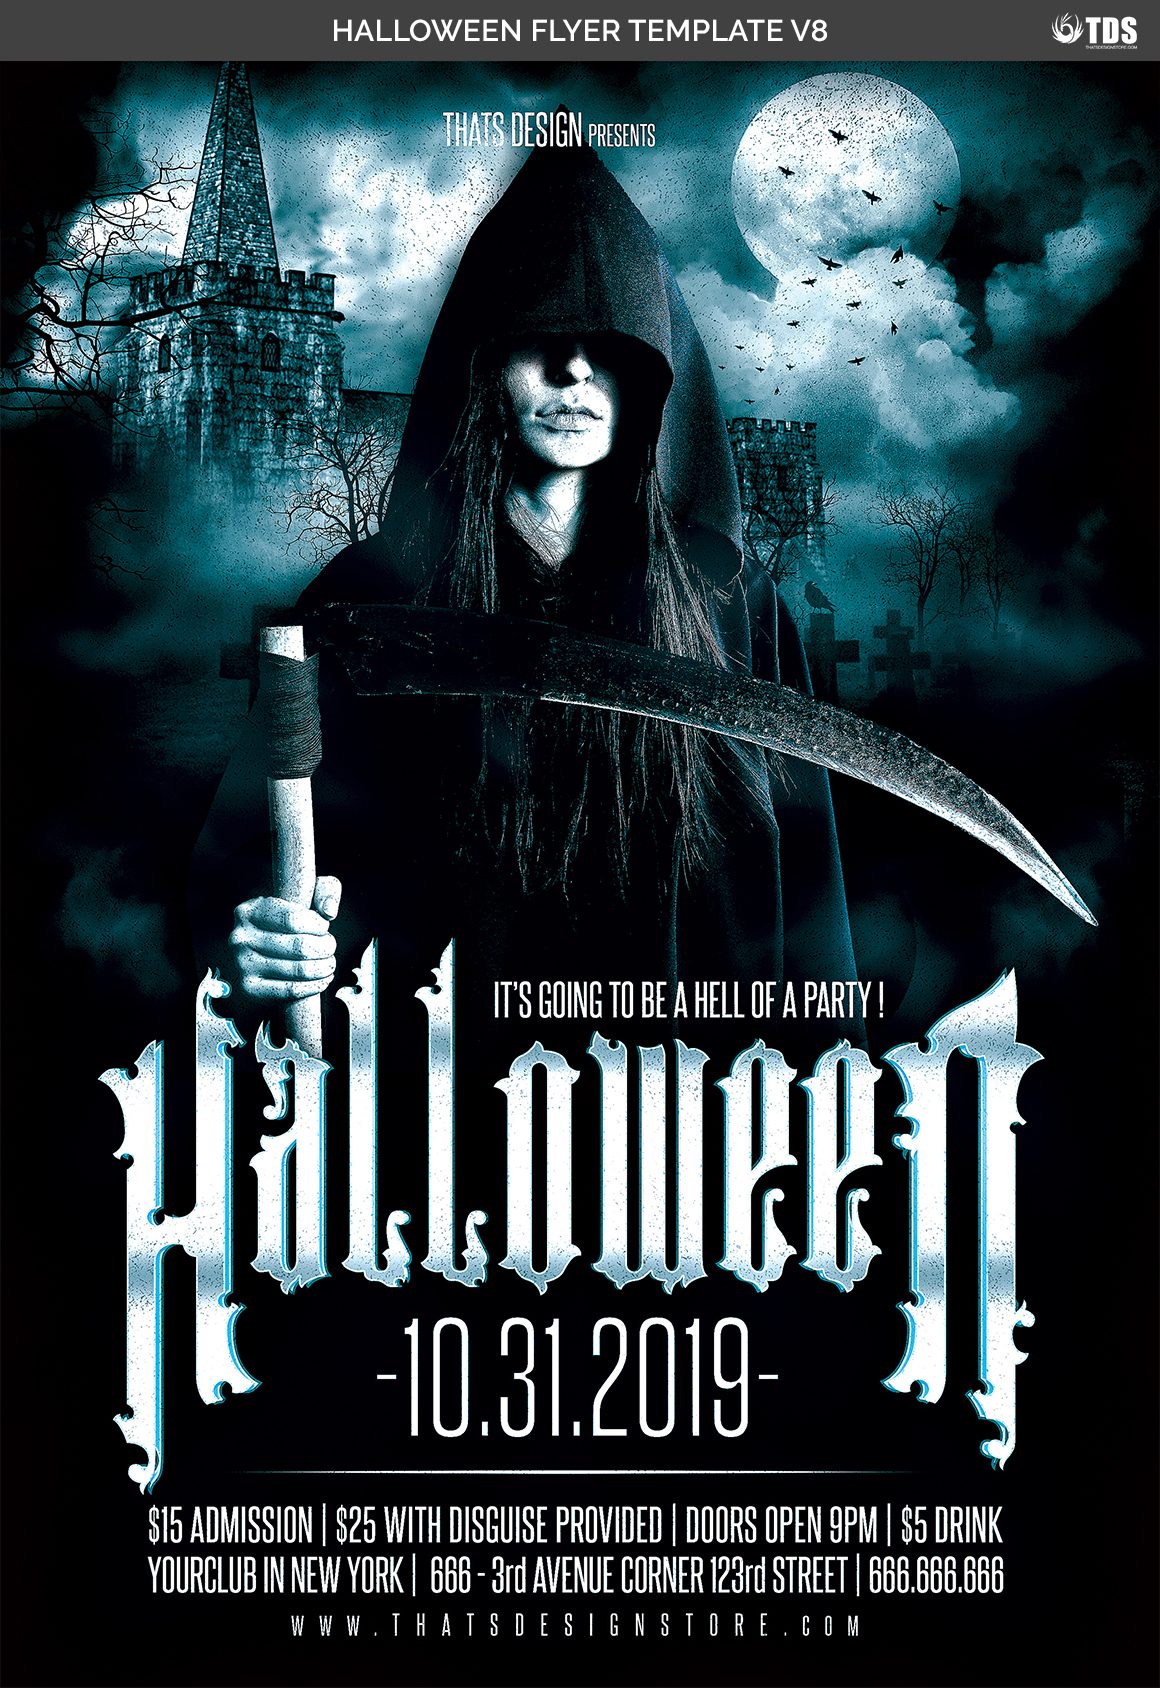 Halloween Flyer Template V8 example image 7